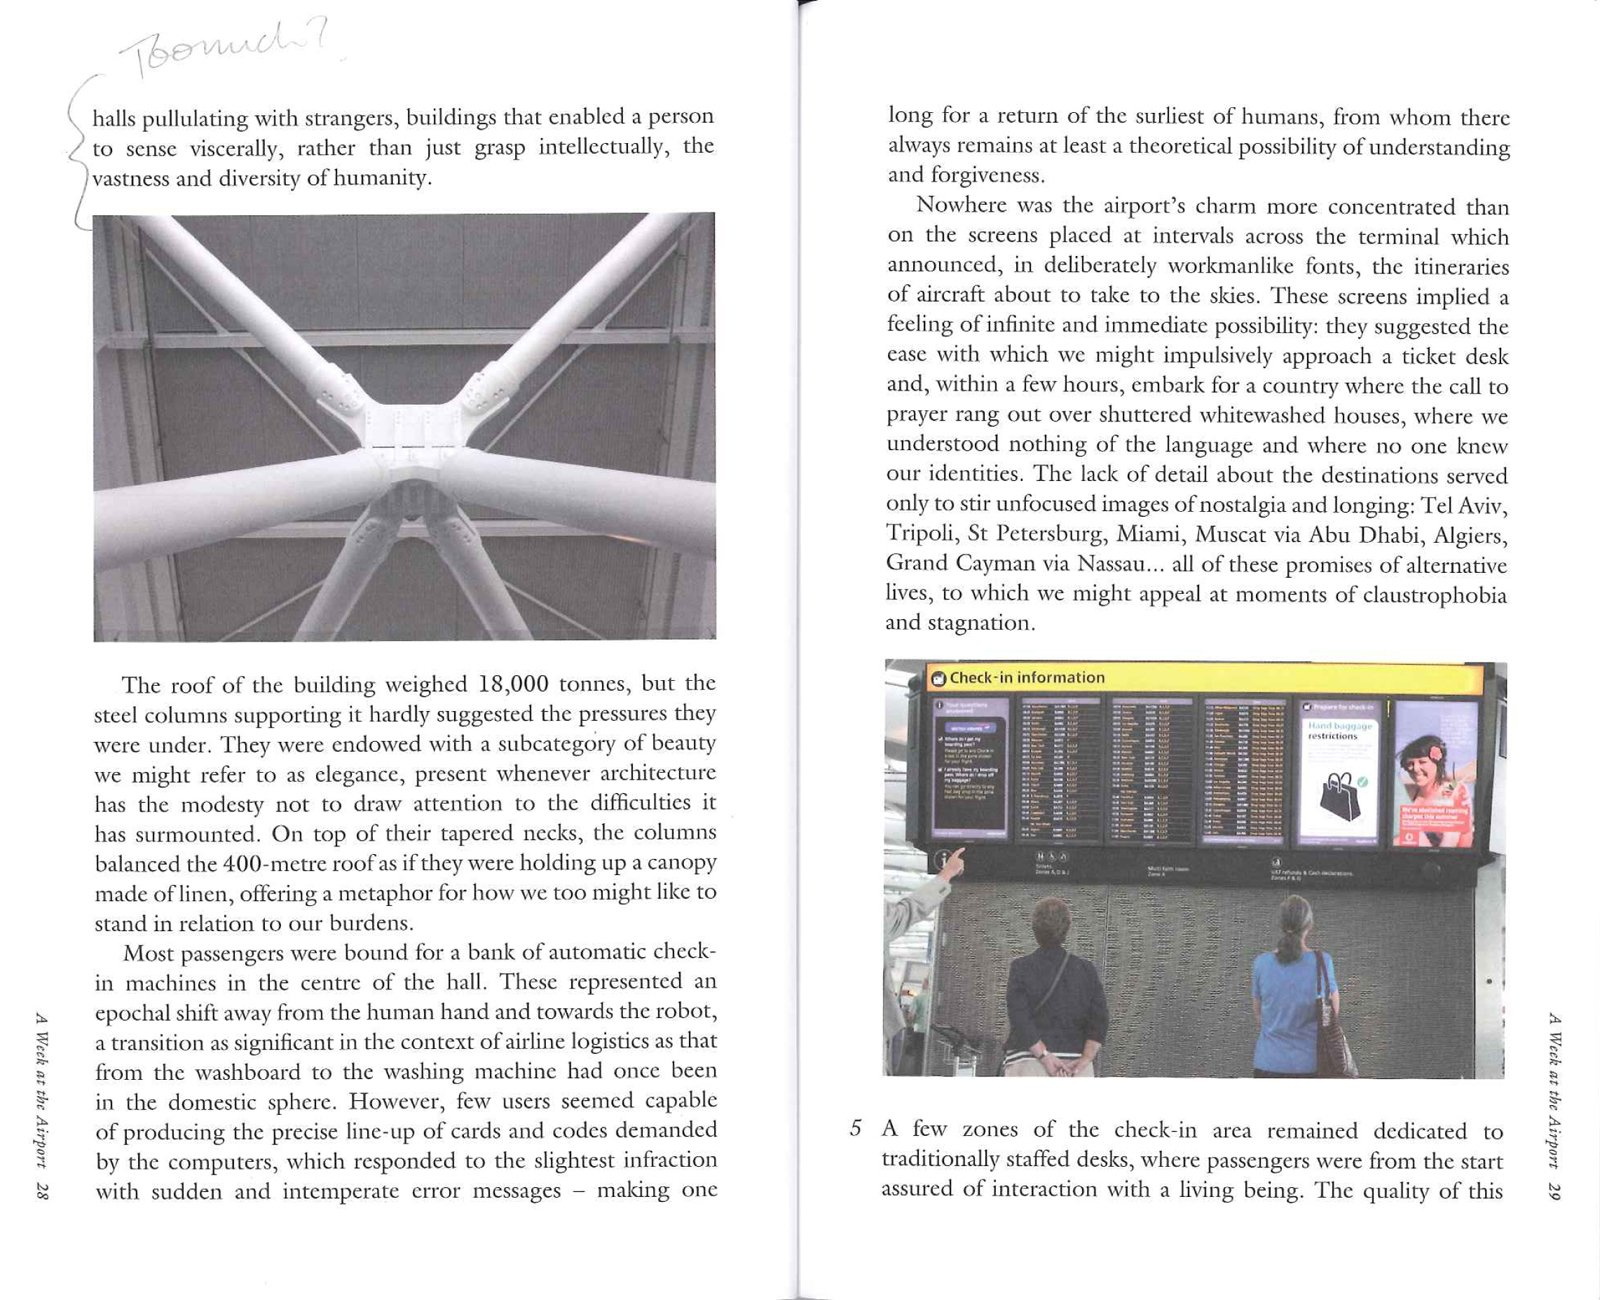 This spread from the book shows two points of interest to travelers: the stunning supports Richard Rogers designed to keep Terminal 5 up, and a list of gates for passengers. Photos by Richard Baker.  Photo 3 of 4 in A Week at the Airport: Part I